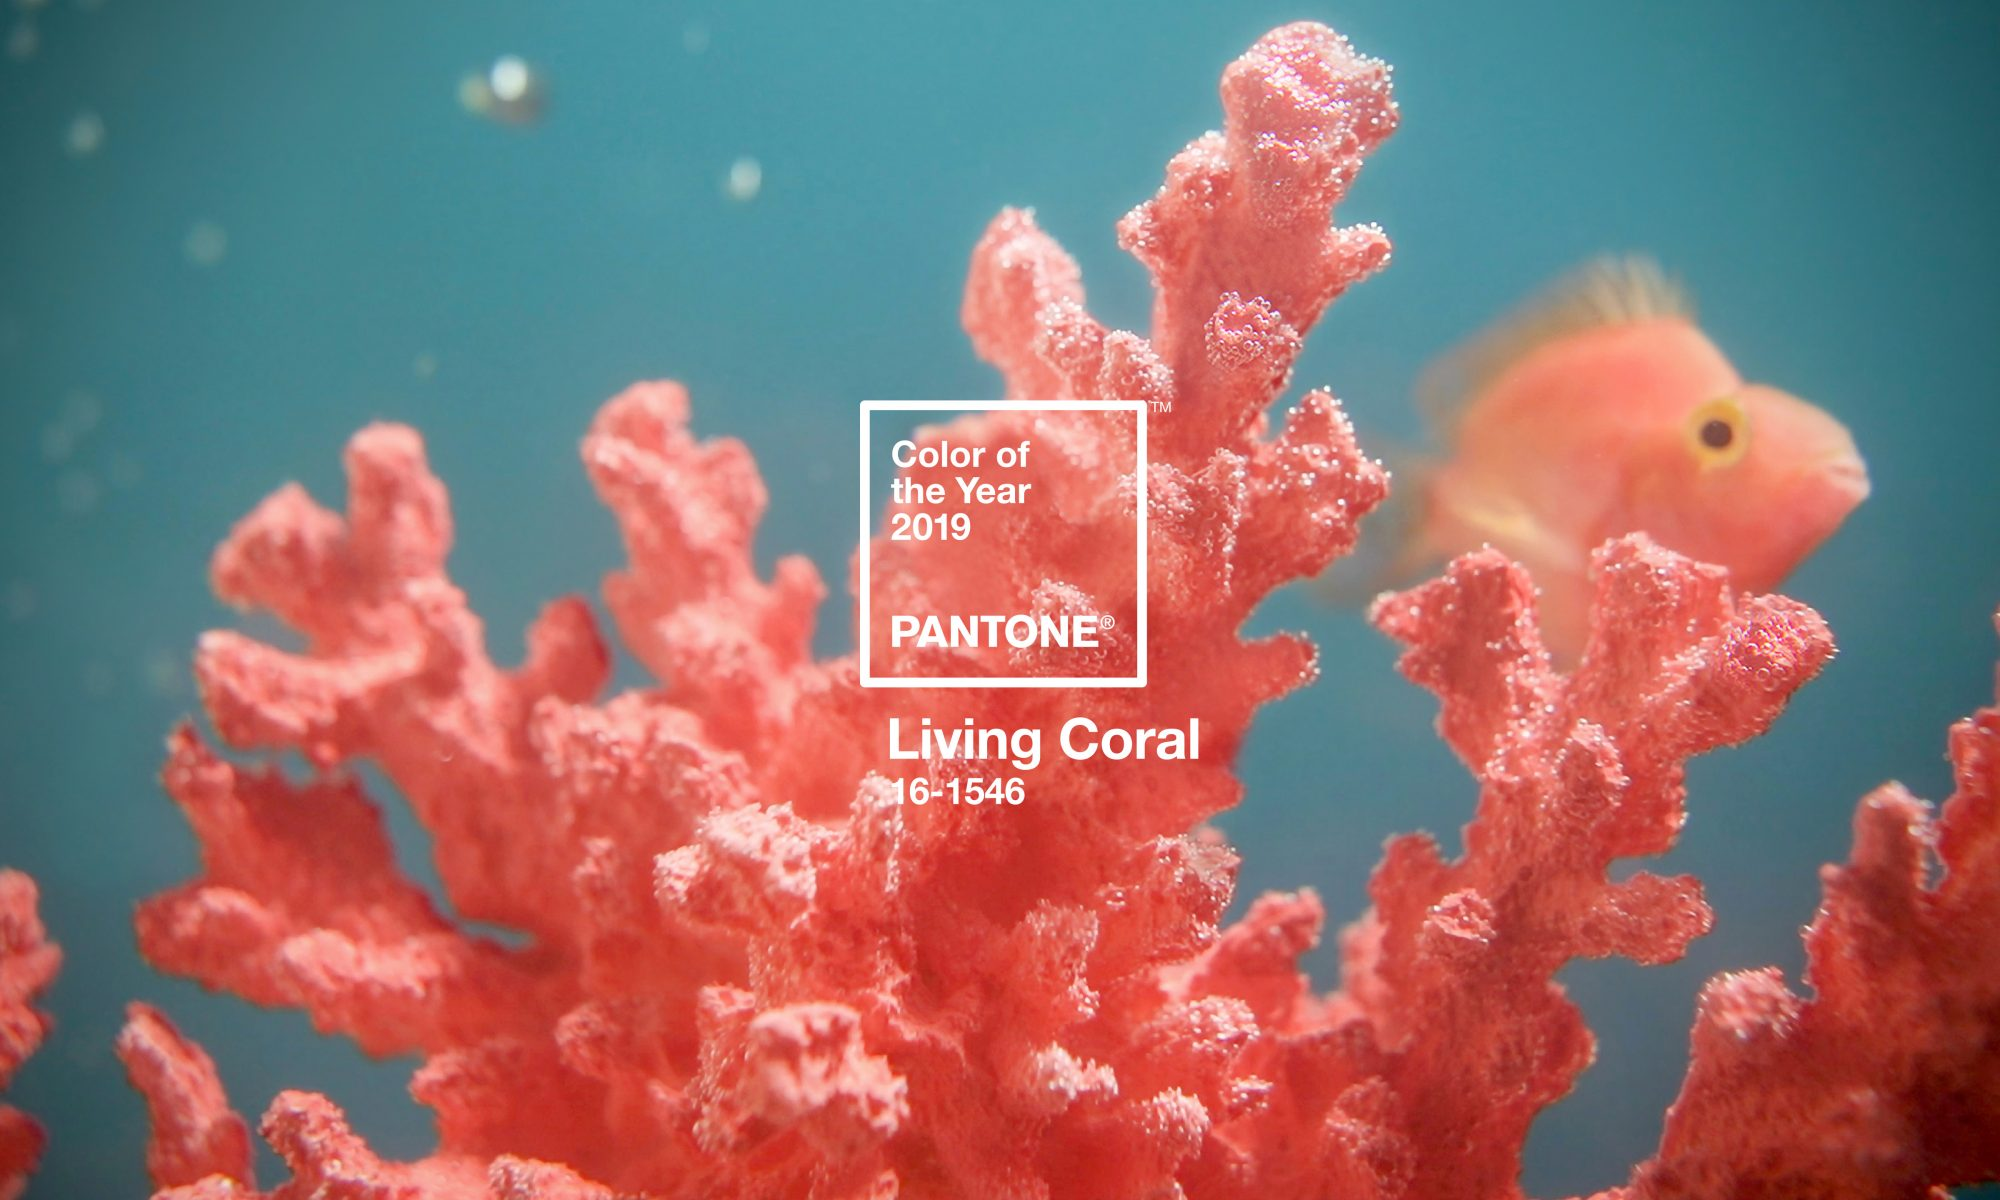 PANTONE-Color-of-the-Year-2019-living-coral- LIVING CORAL couleur Pantone de l'année 2019